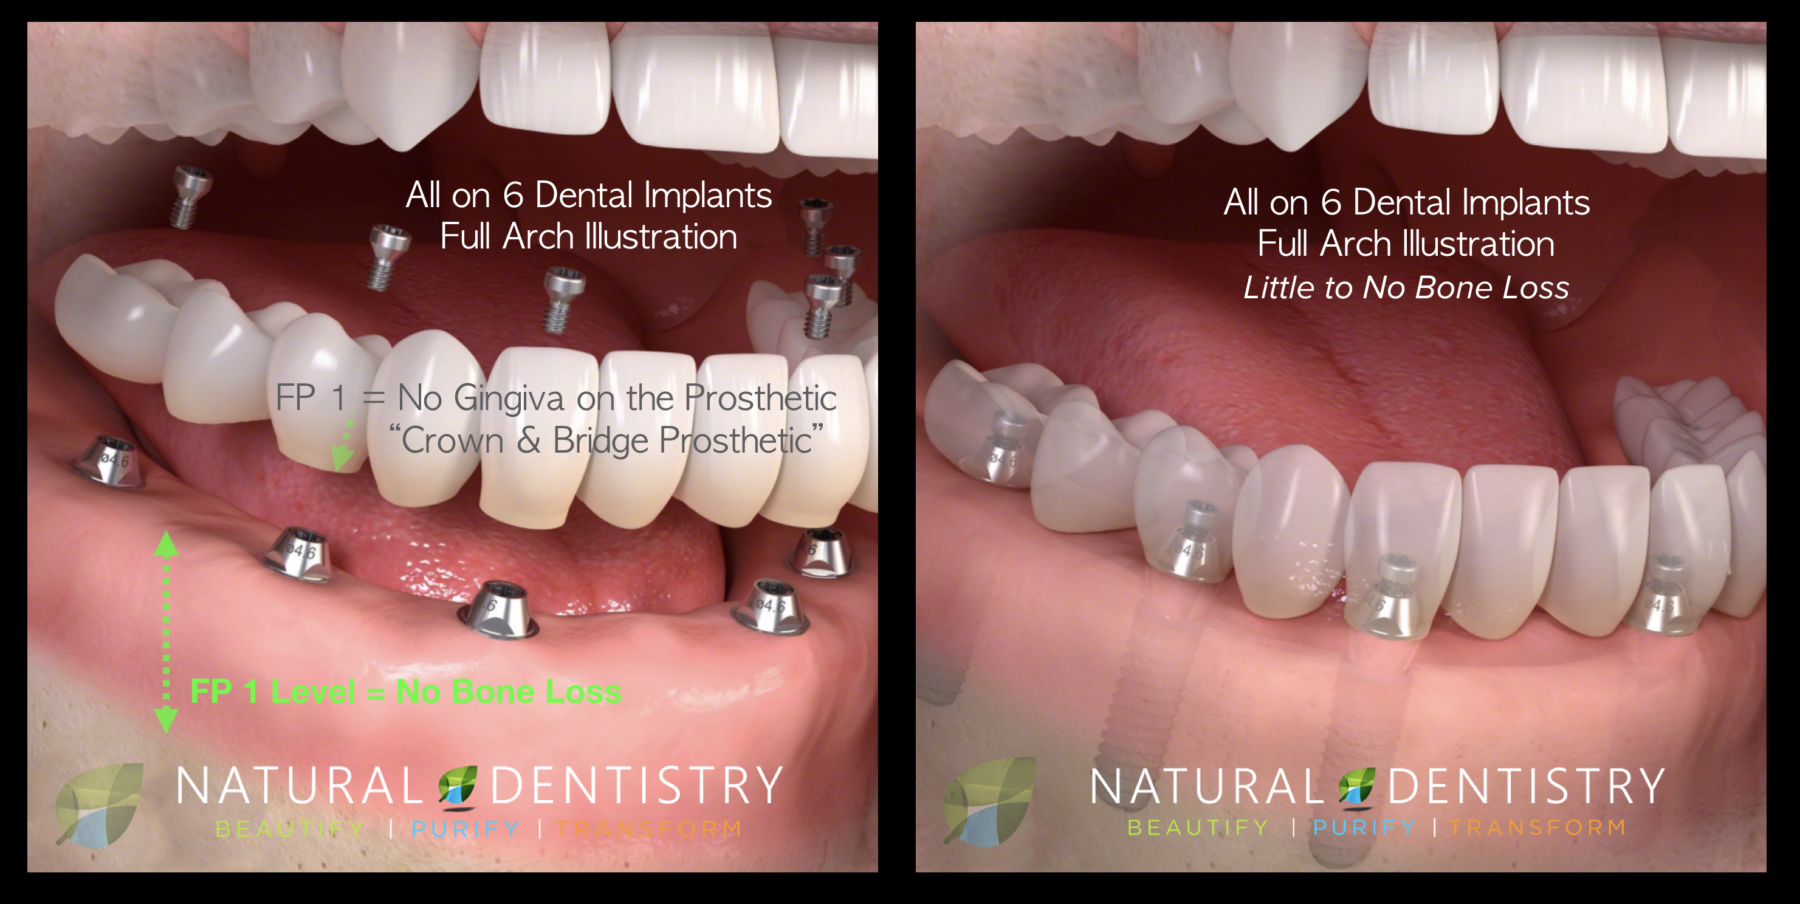 All on 6 Dental Implants Full Mouth Reconstruction Best Dentist Implants